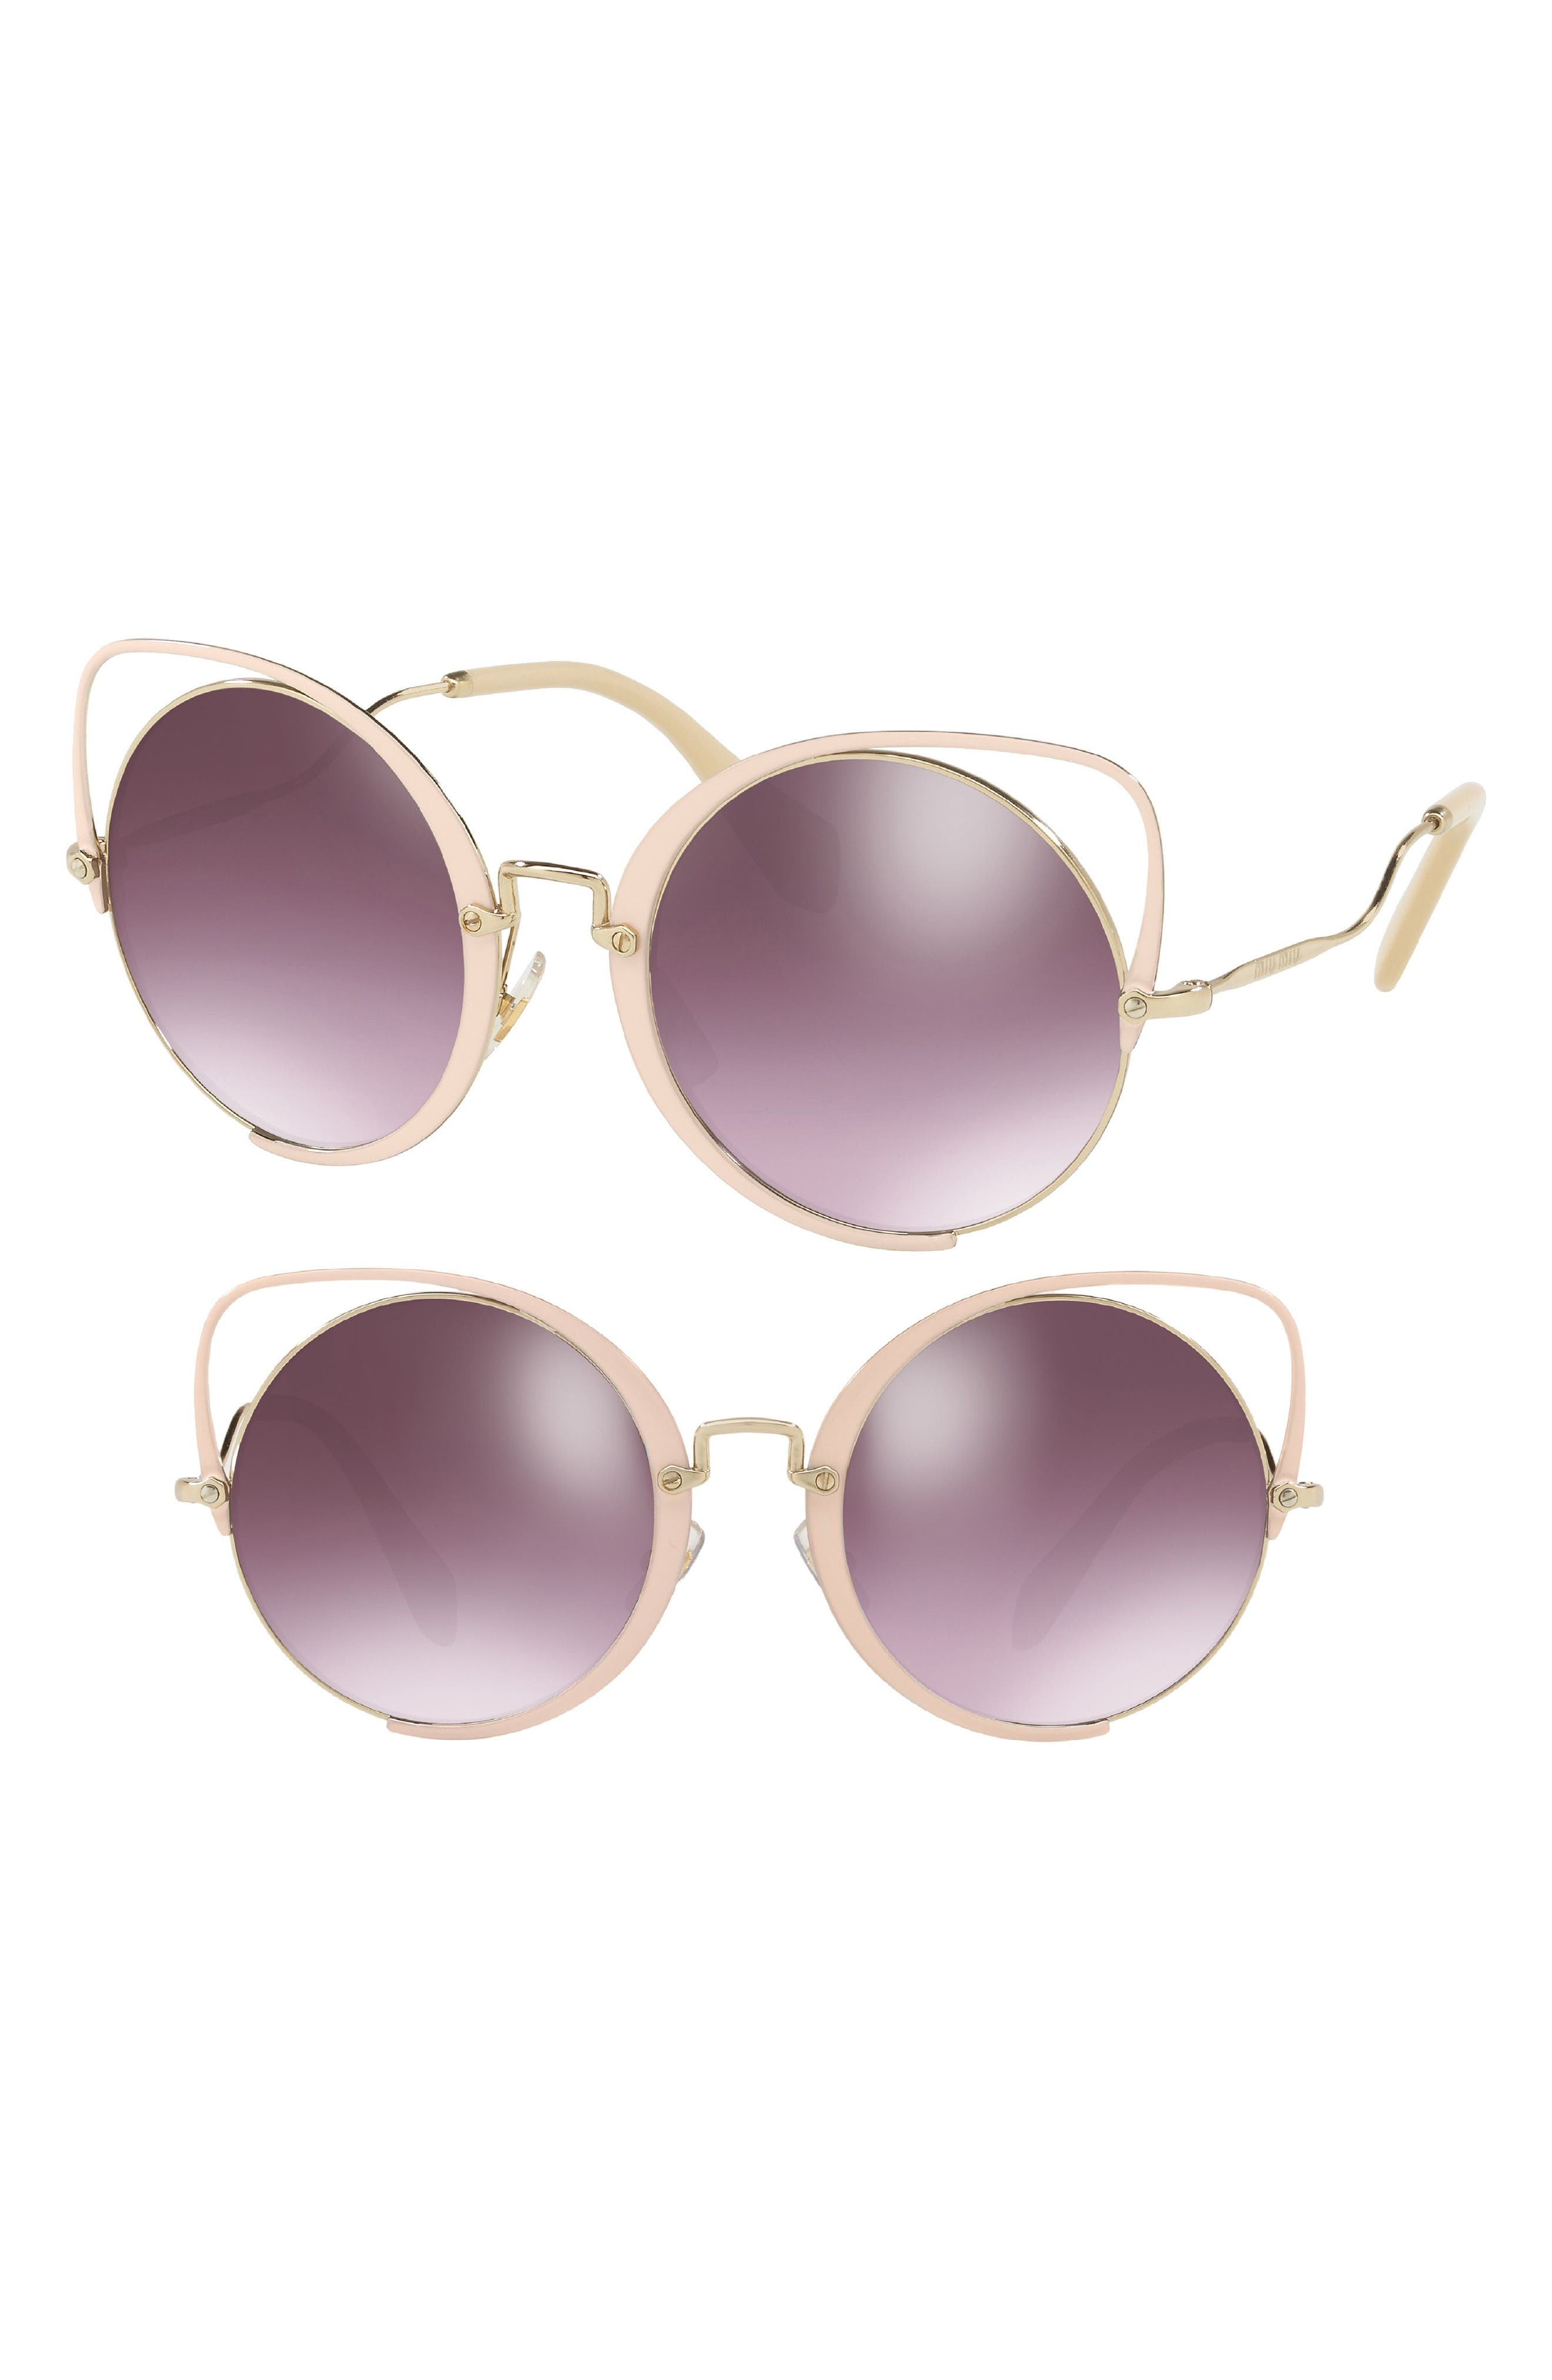 Miu Miu 54mm Round Lens Cat Eye Sunglasses